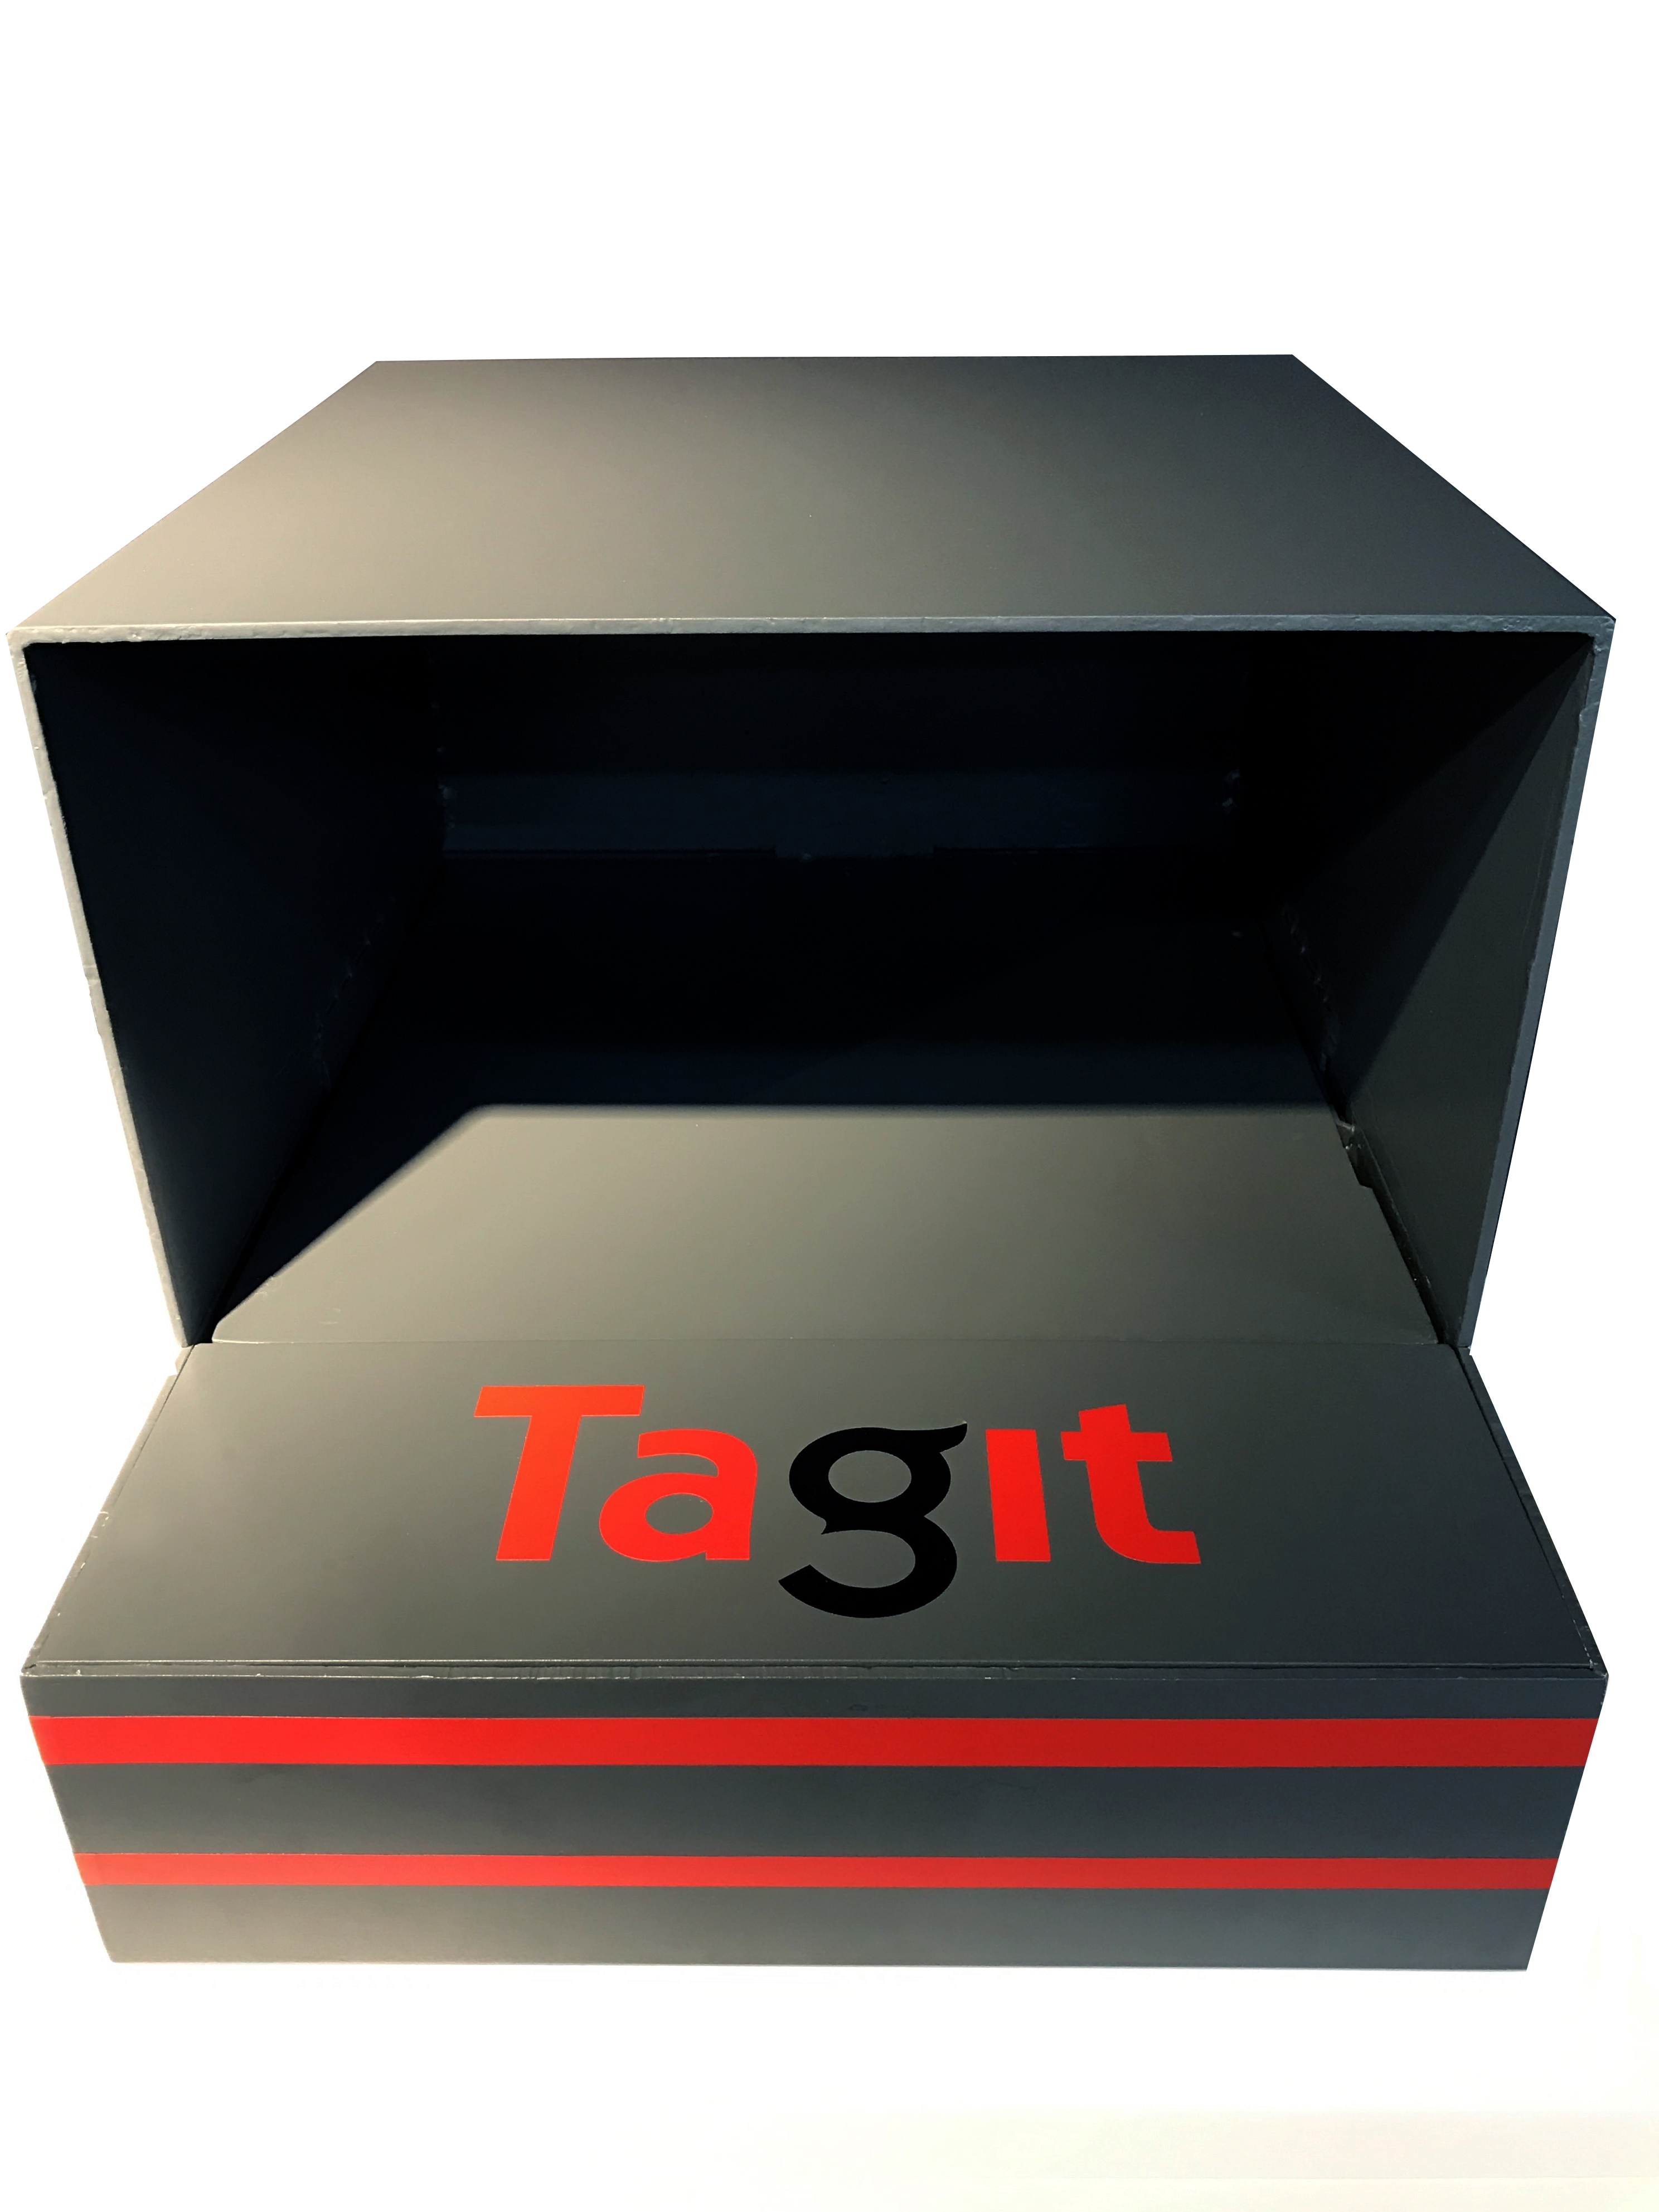 Tagit Consignment Box